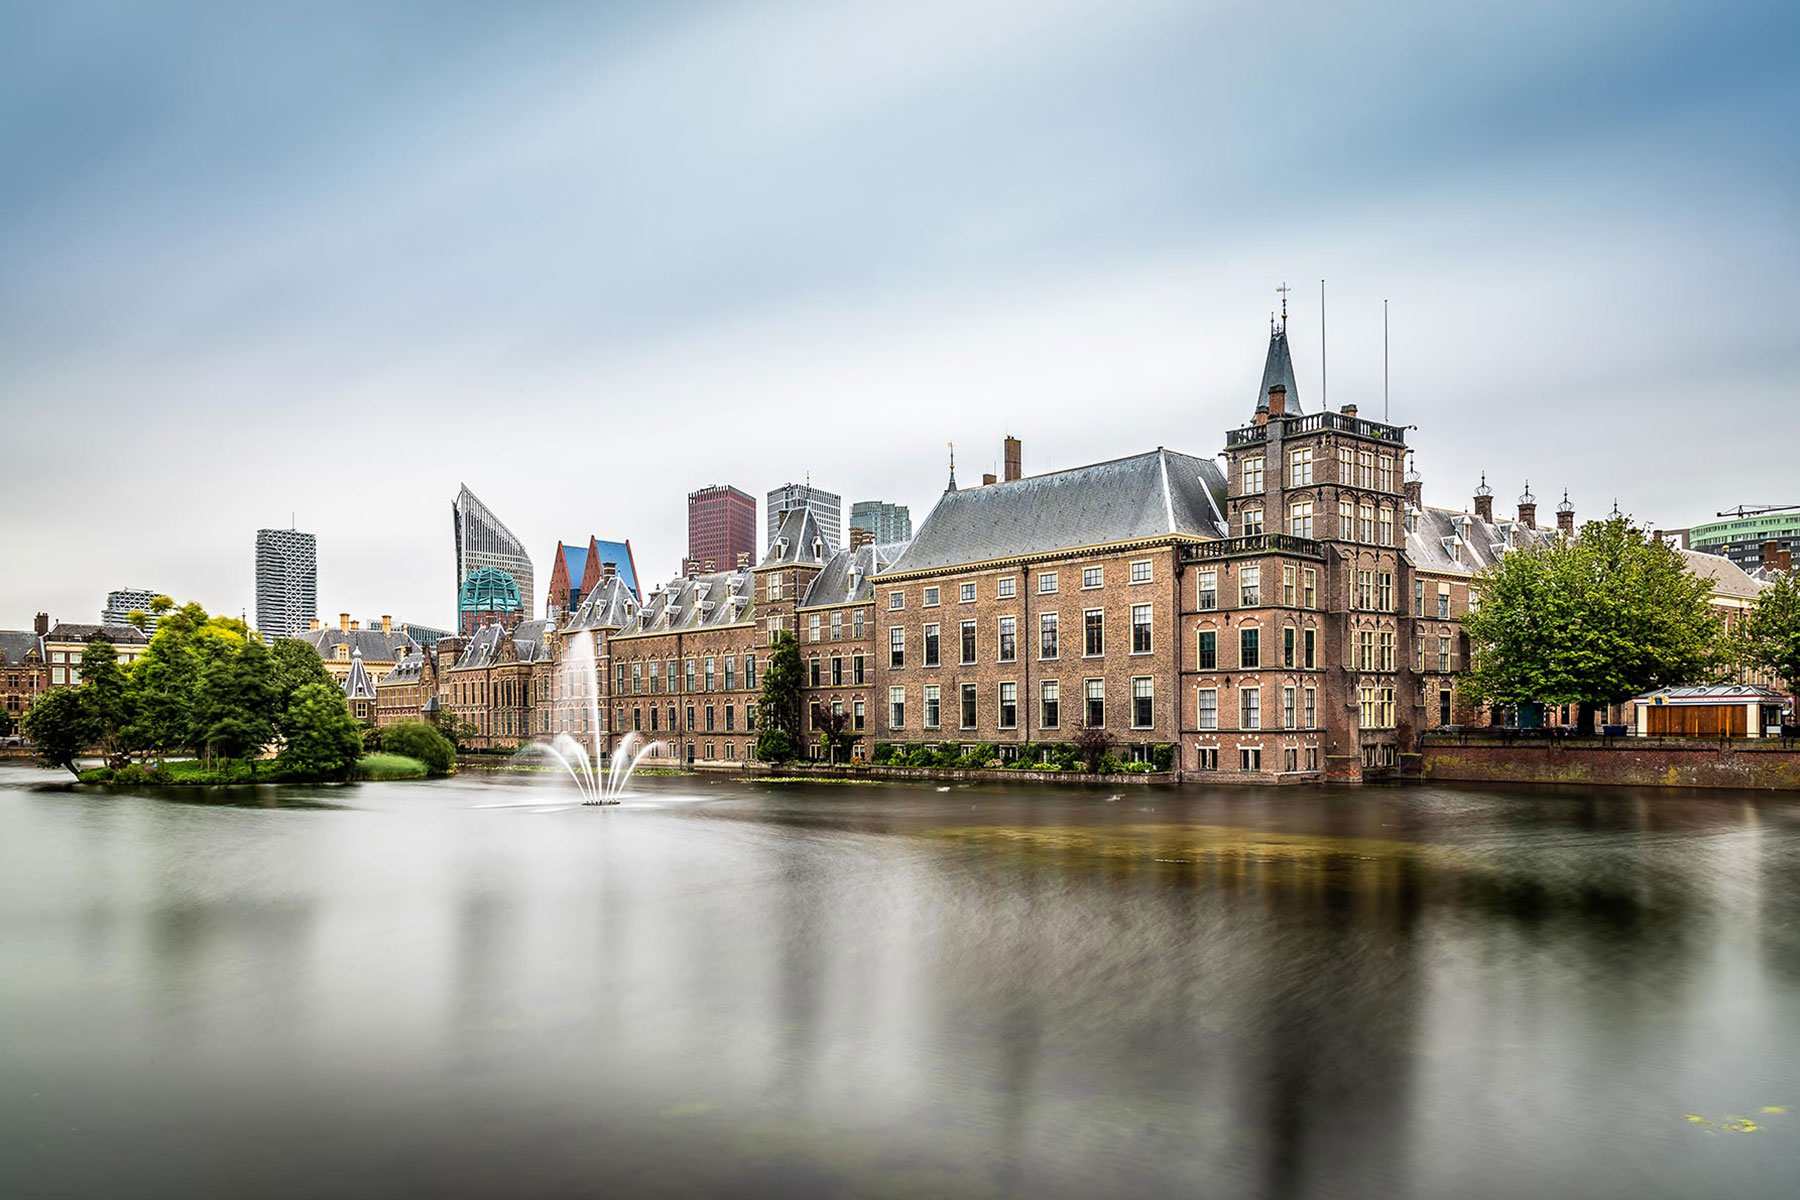 the-binnenhof-in-the-hague-the-netherlands-TANJPTS